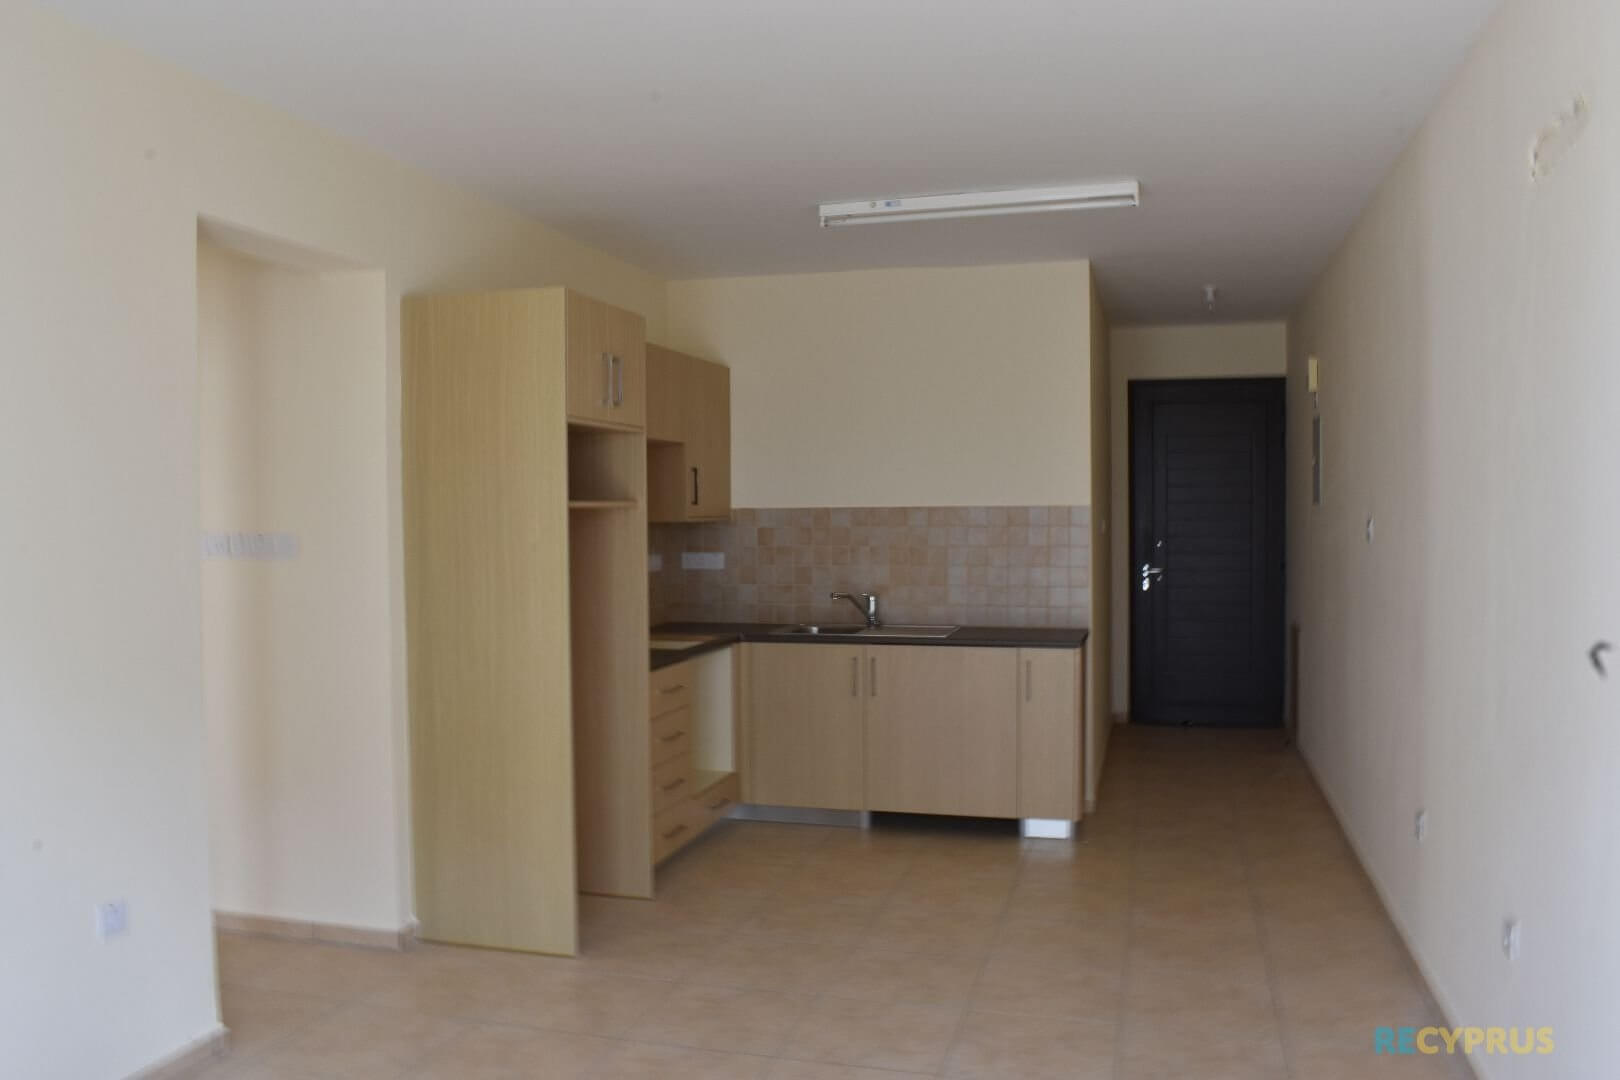 Apartment for sale Kapparis Famagusta Cyprus 4 3517